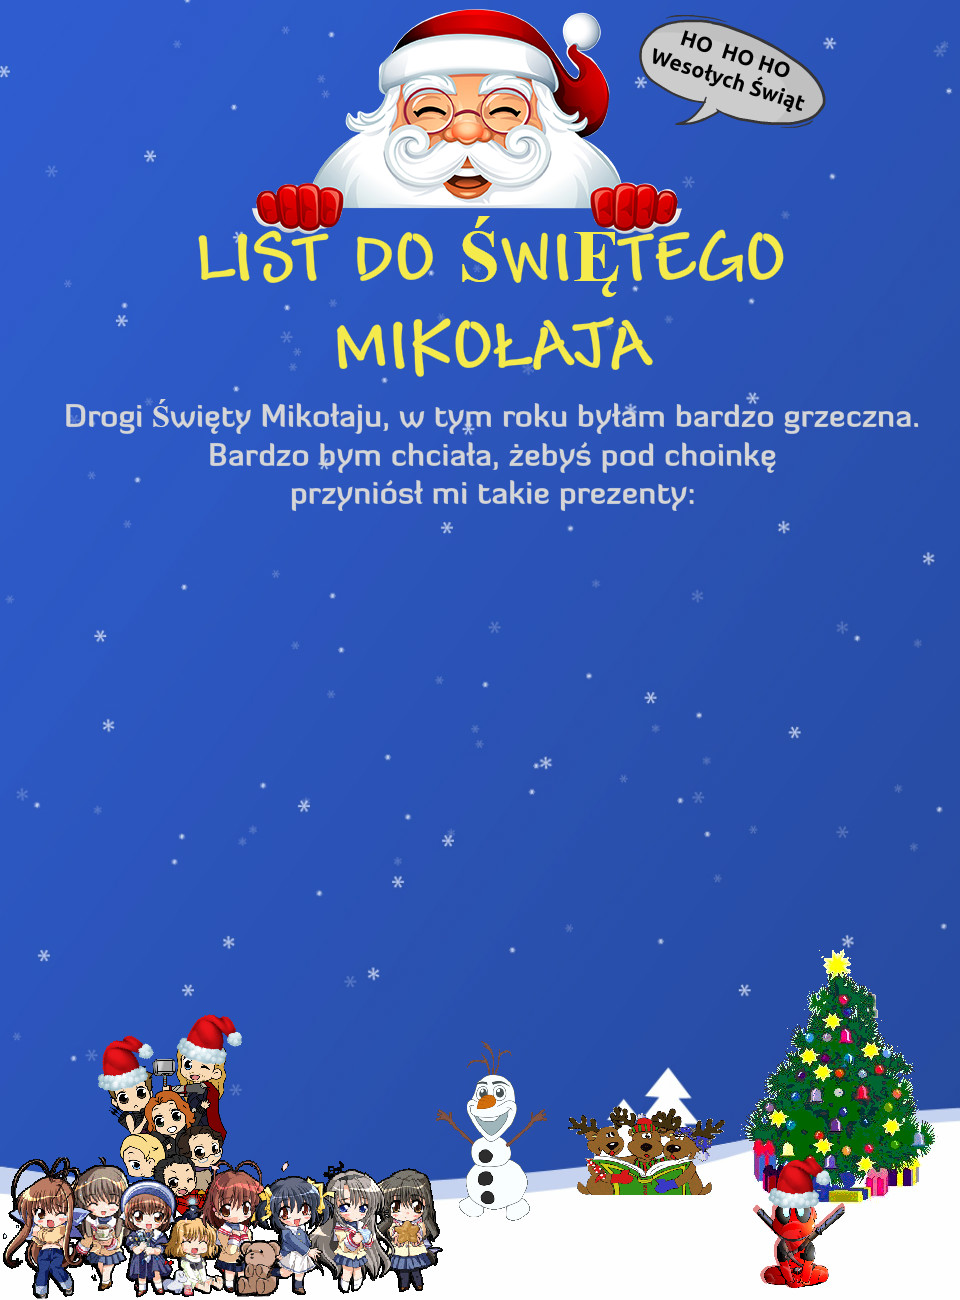 List do Mikołaja